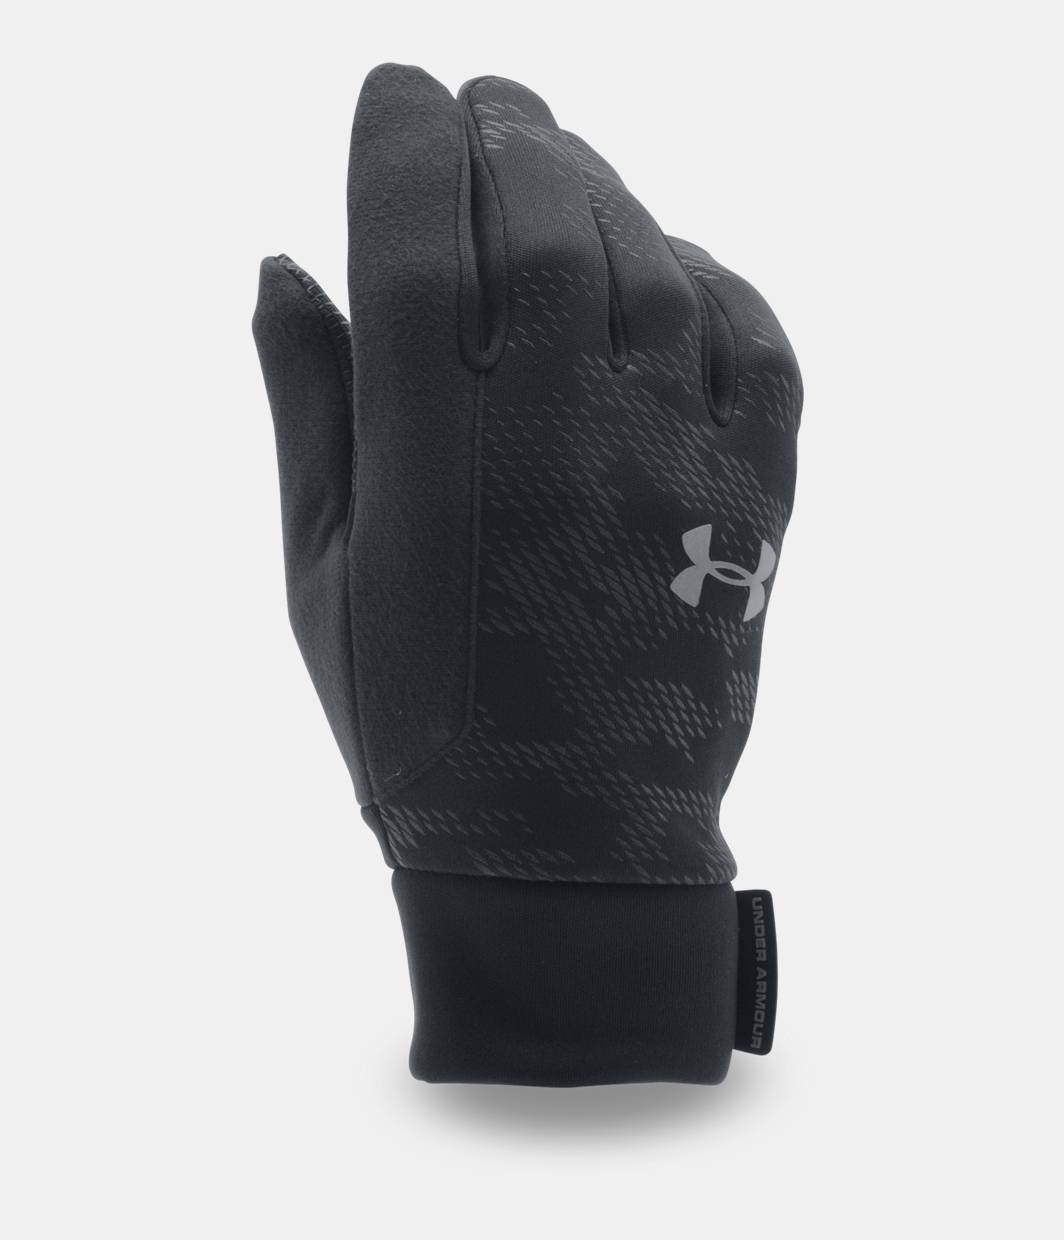 Mens sizes in gloves - Men S Ua No Breaks Coldgear Infrared Liner Gloves Black Zoomed Image